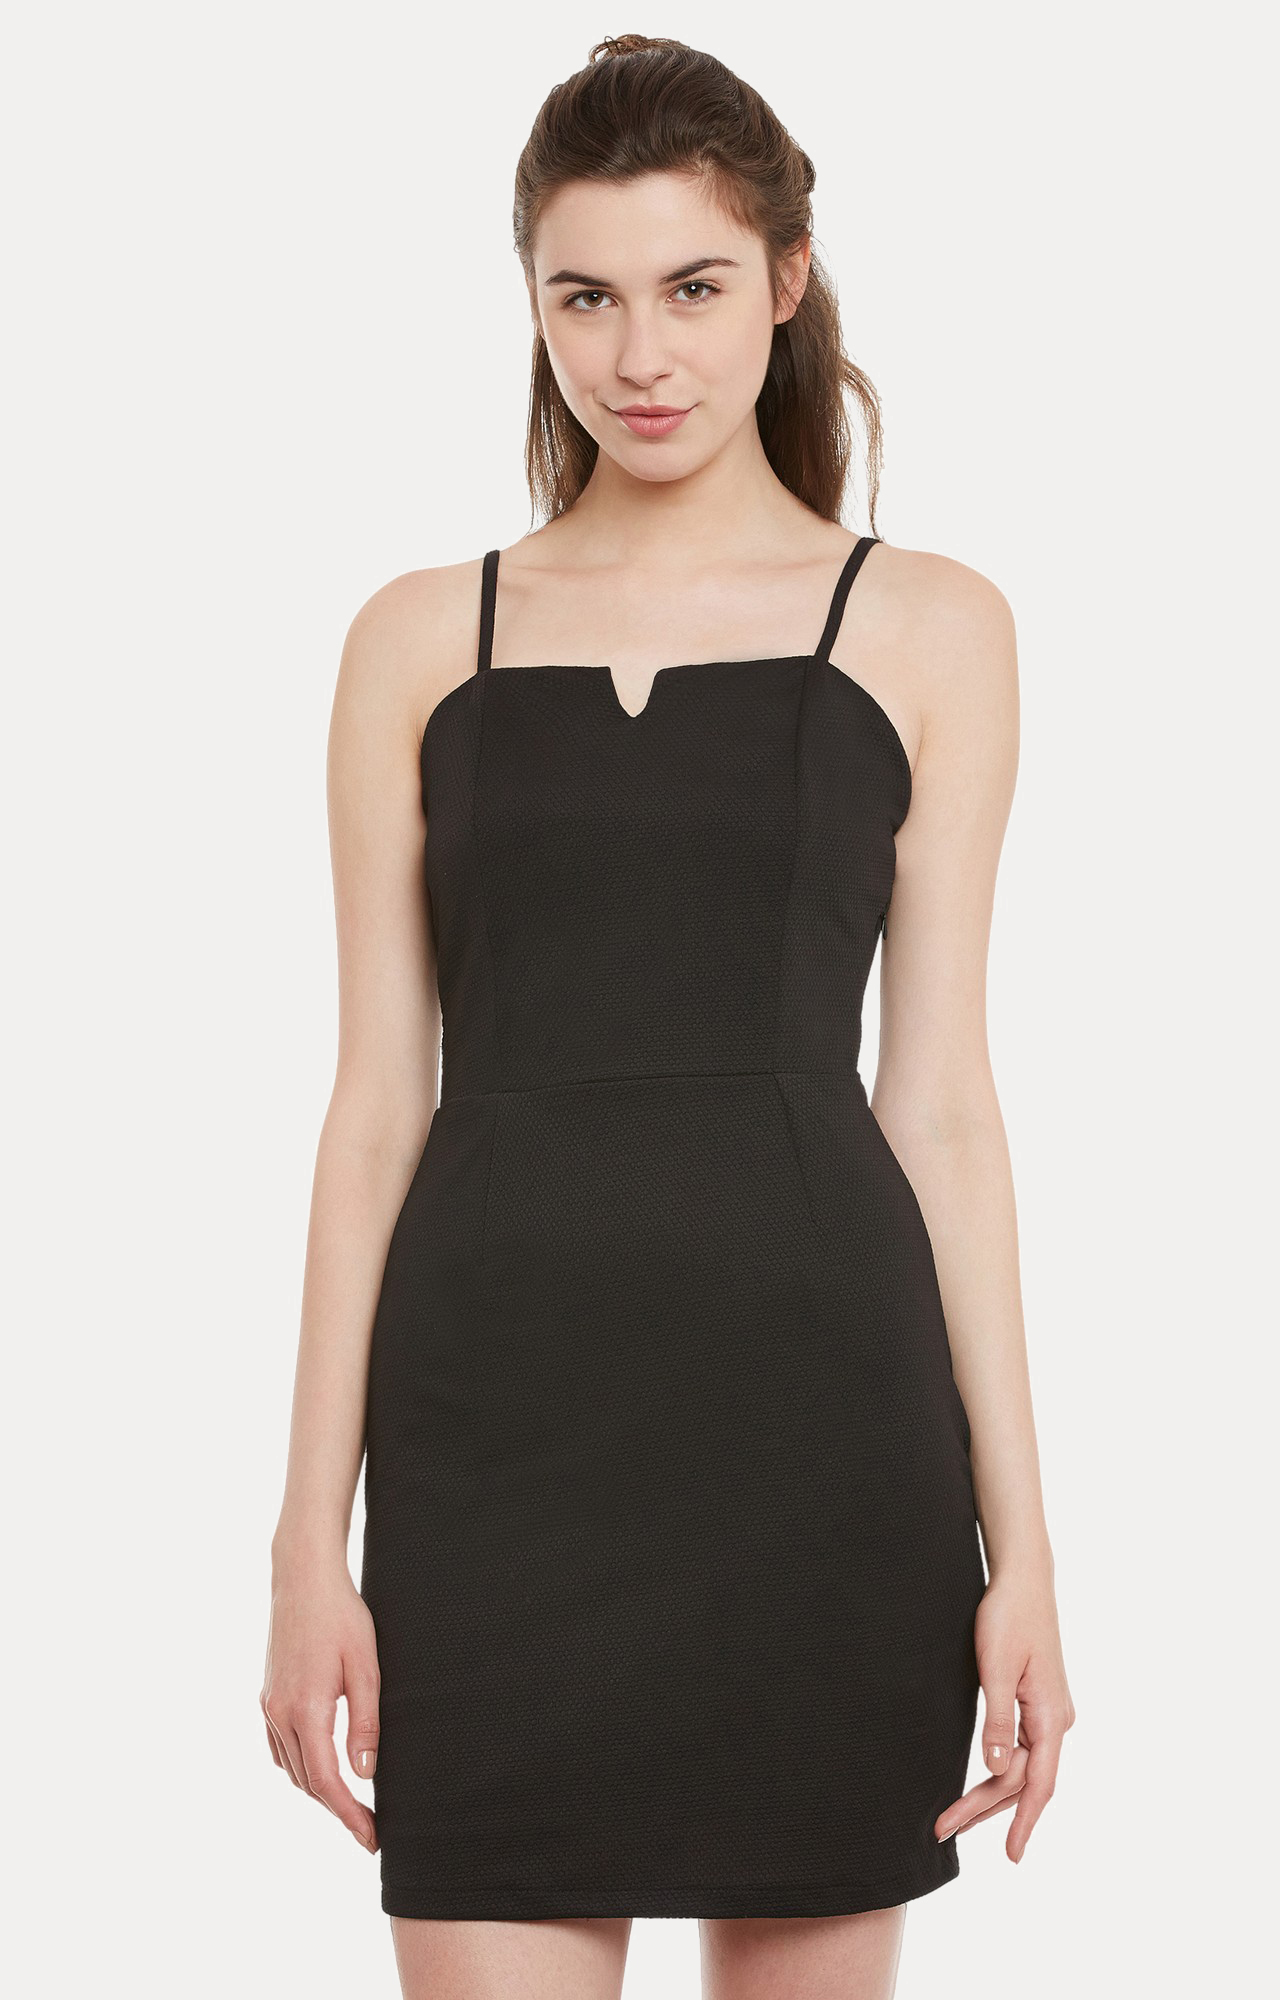 MISS CHASE | Black Solid Panelled Sheath Dress